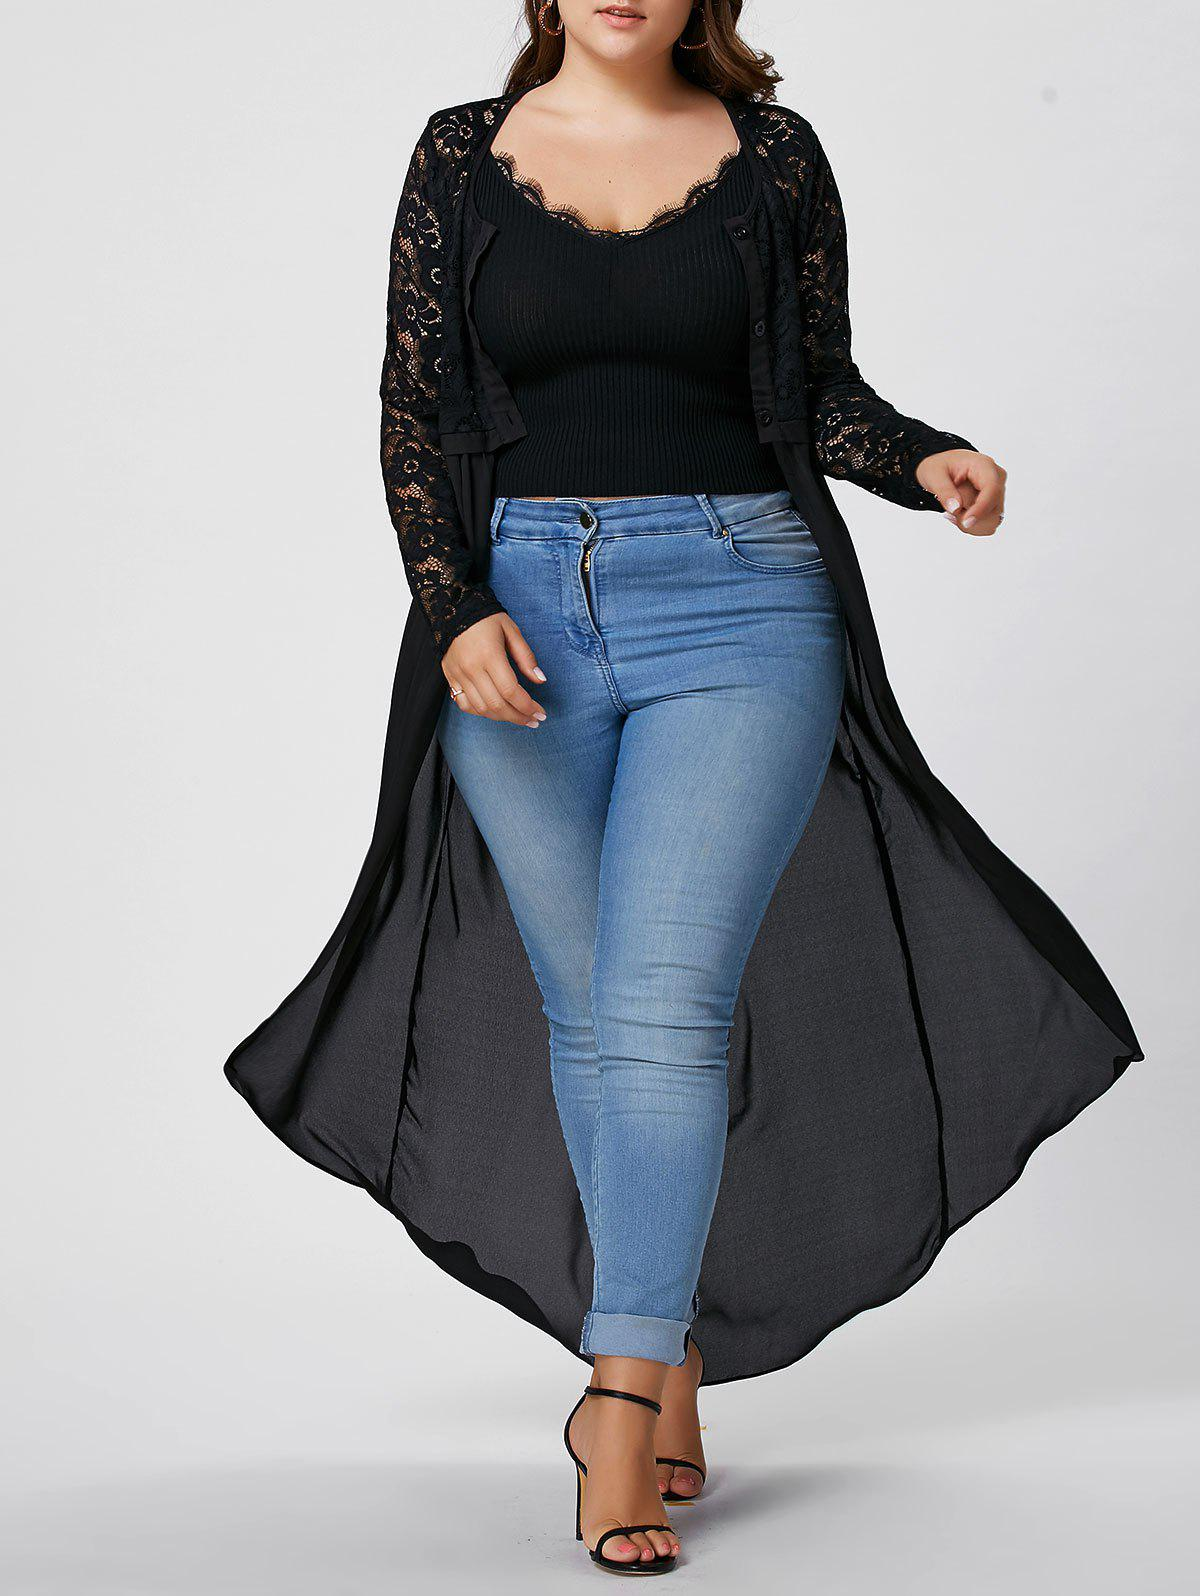 Plus Size Sheer Lace Chiffon Maxi Front Slit TopWOMEN<br><br>Size: 5XL; Color: BLACK; Material: Polyester; Fabric Type: Chiffon; Shirt Length: Long; Sleeve Length: Full; Collar: Scoop Neck; Style: Fashion; Season: Spring,Summer; Embellishment: Button,Hollow Out,Lace; Pattern Type: Solid; Weight: 0.2600kg; Package Contents: 1 x Top;